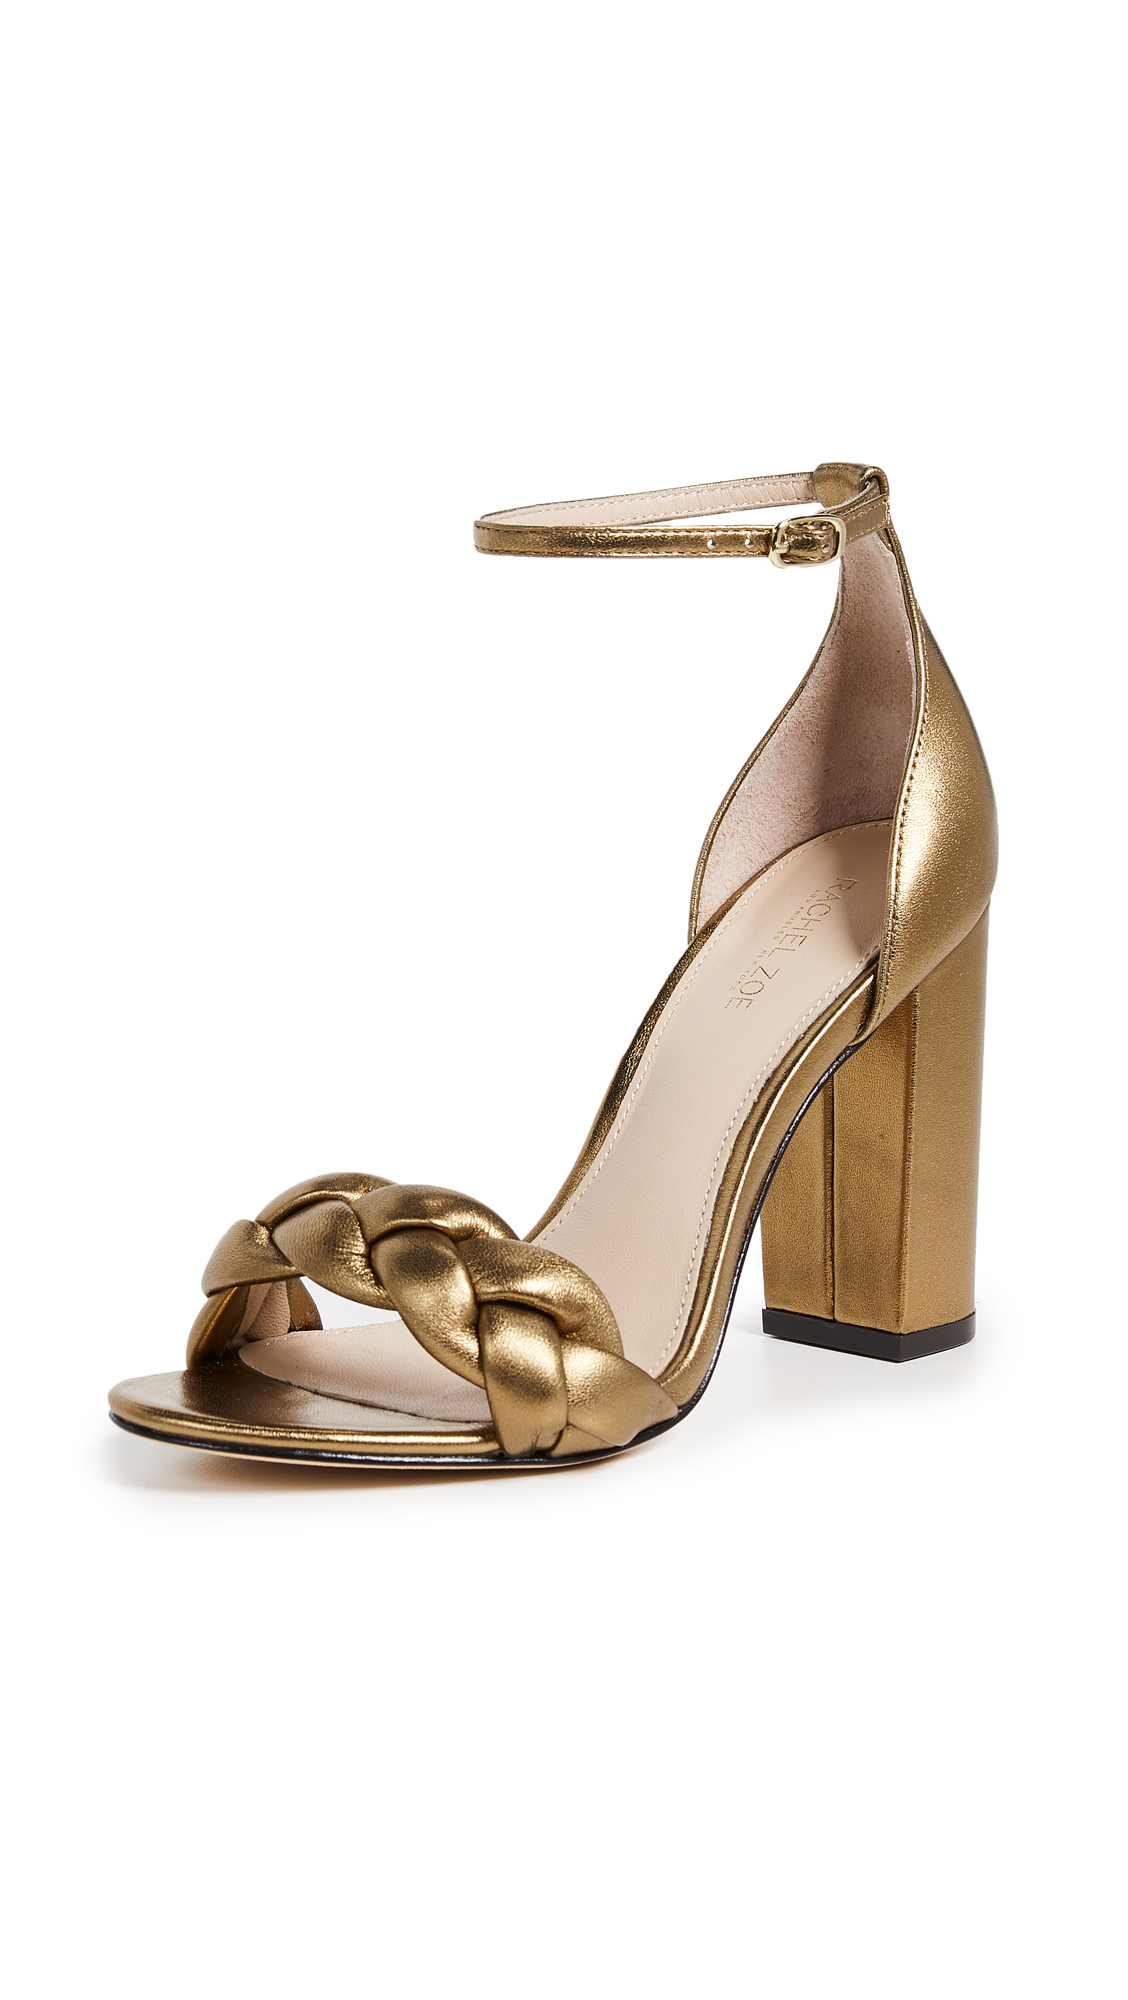 Rachel Zoe Ashton Block Heel City Sandals - Dark Gold